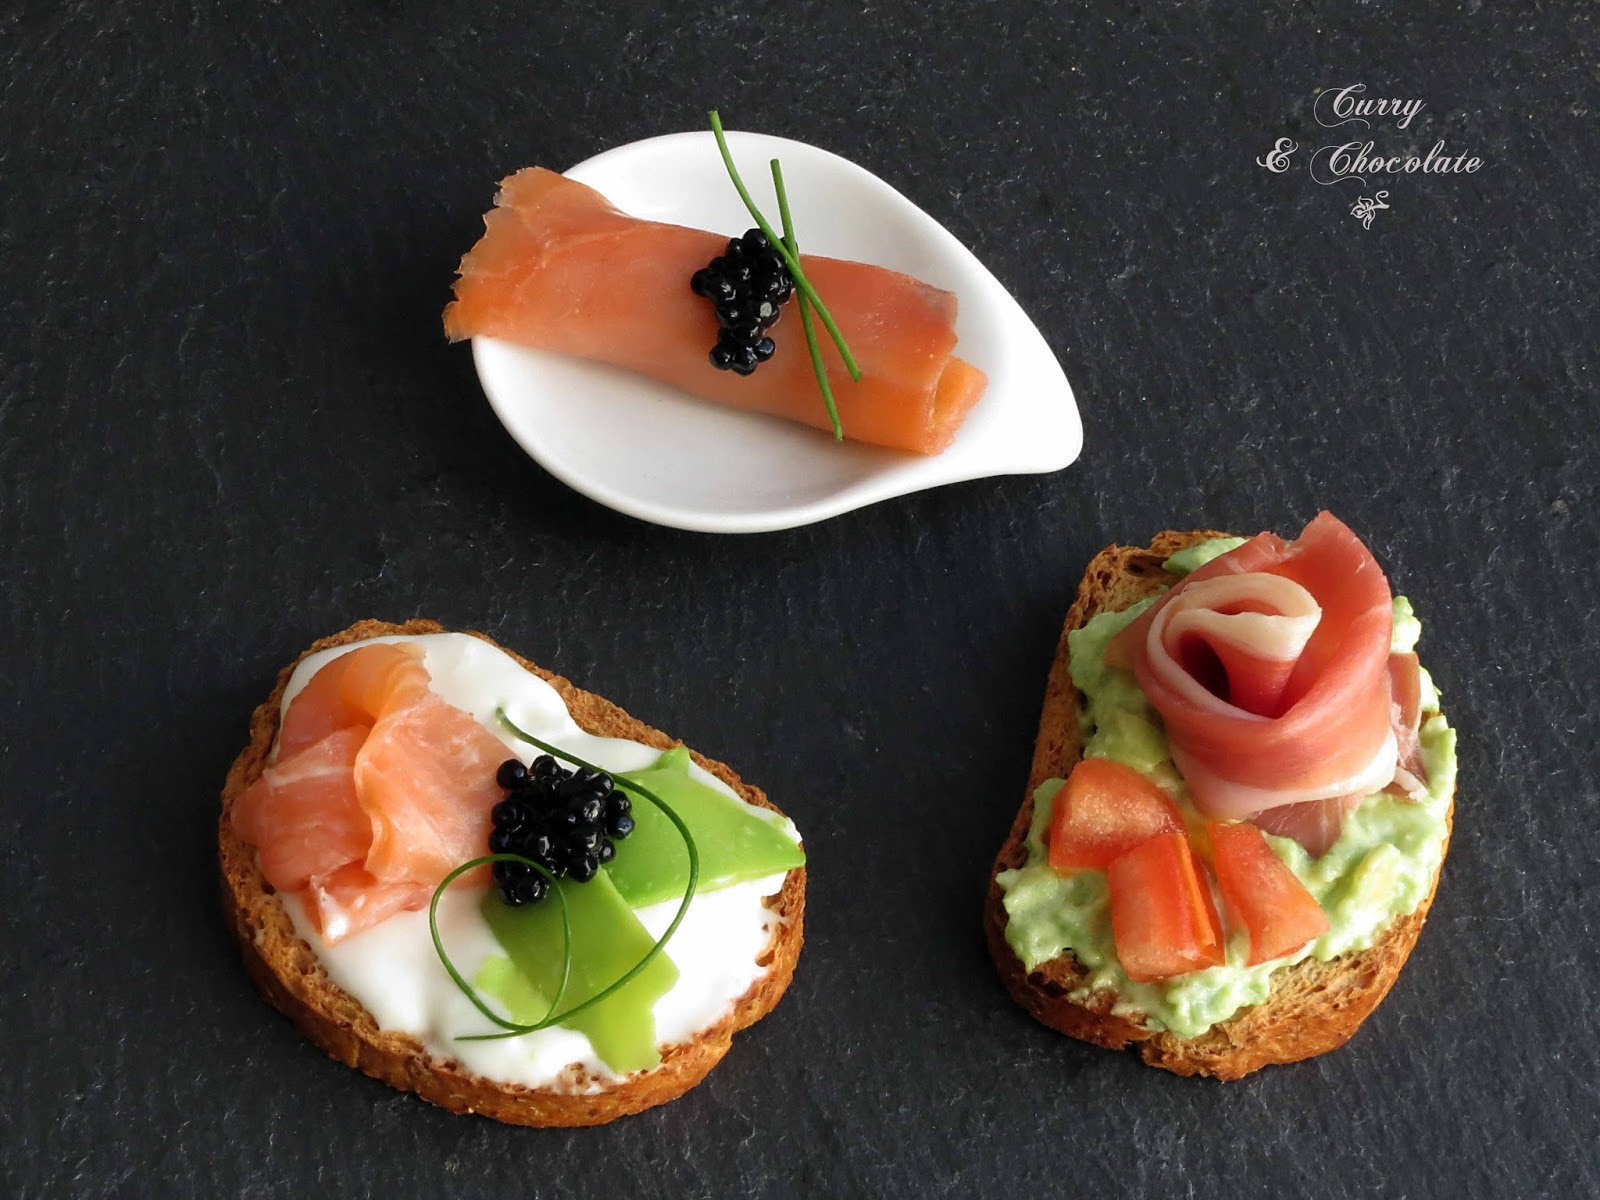 Canapés de salmón y aguacate – Avocado and smoked salmón appetizers